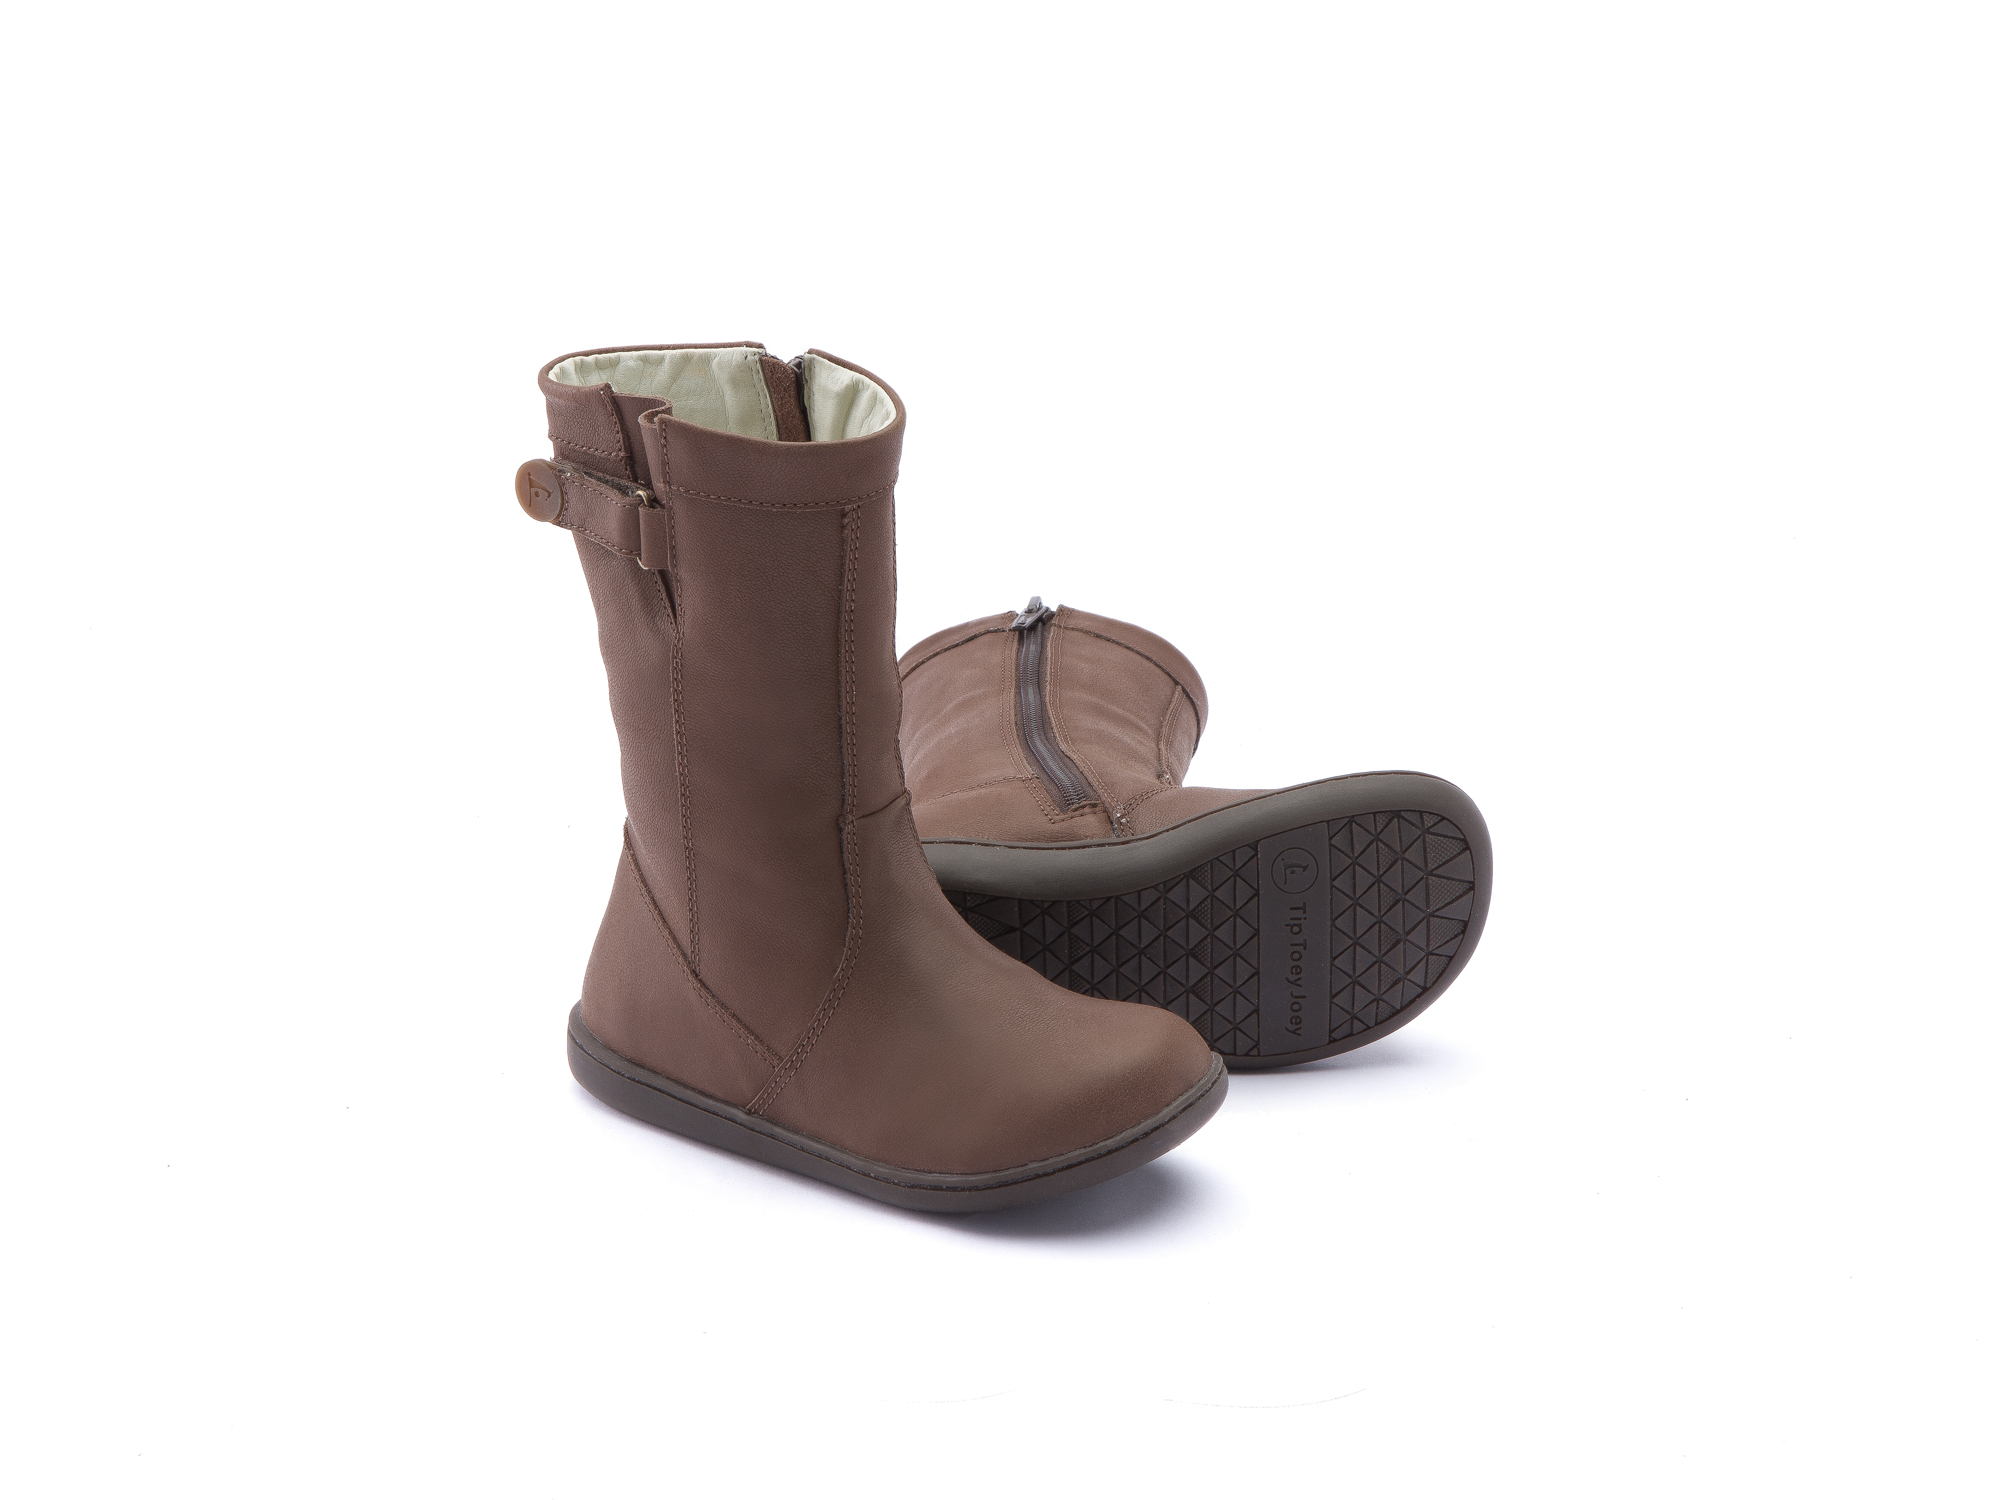 Bota Little Cold Old Brown  Toddler 2 à 4 anos - 2